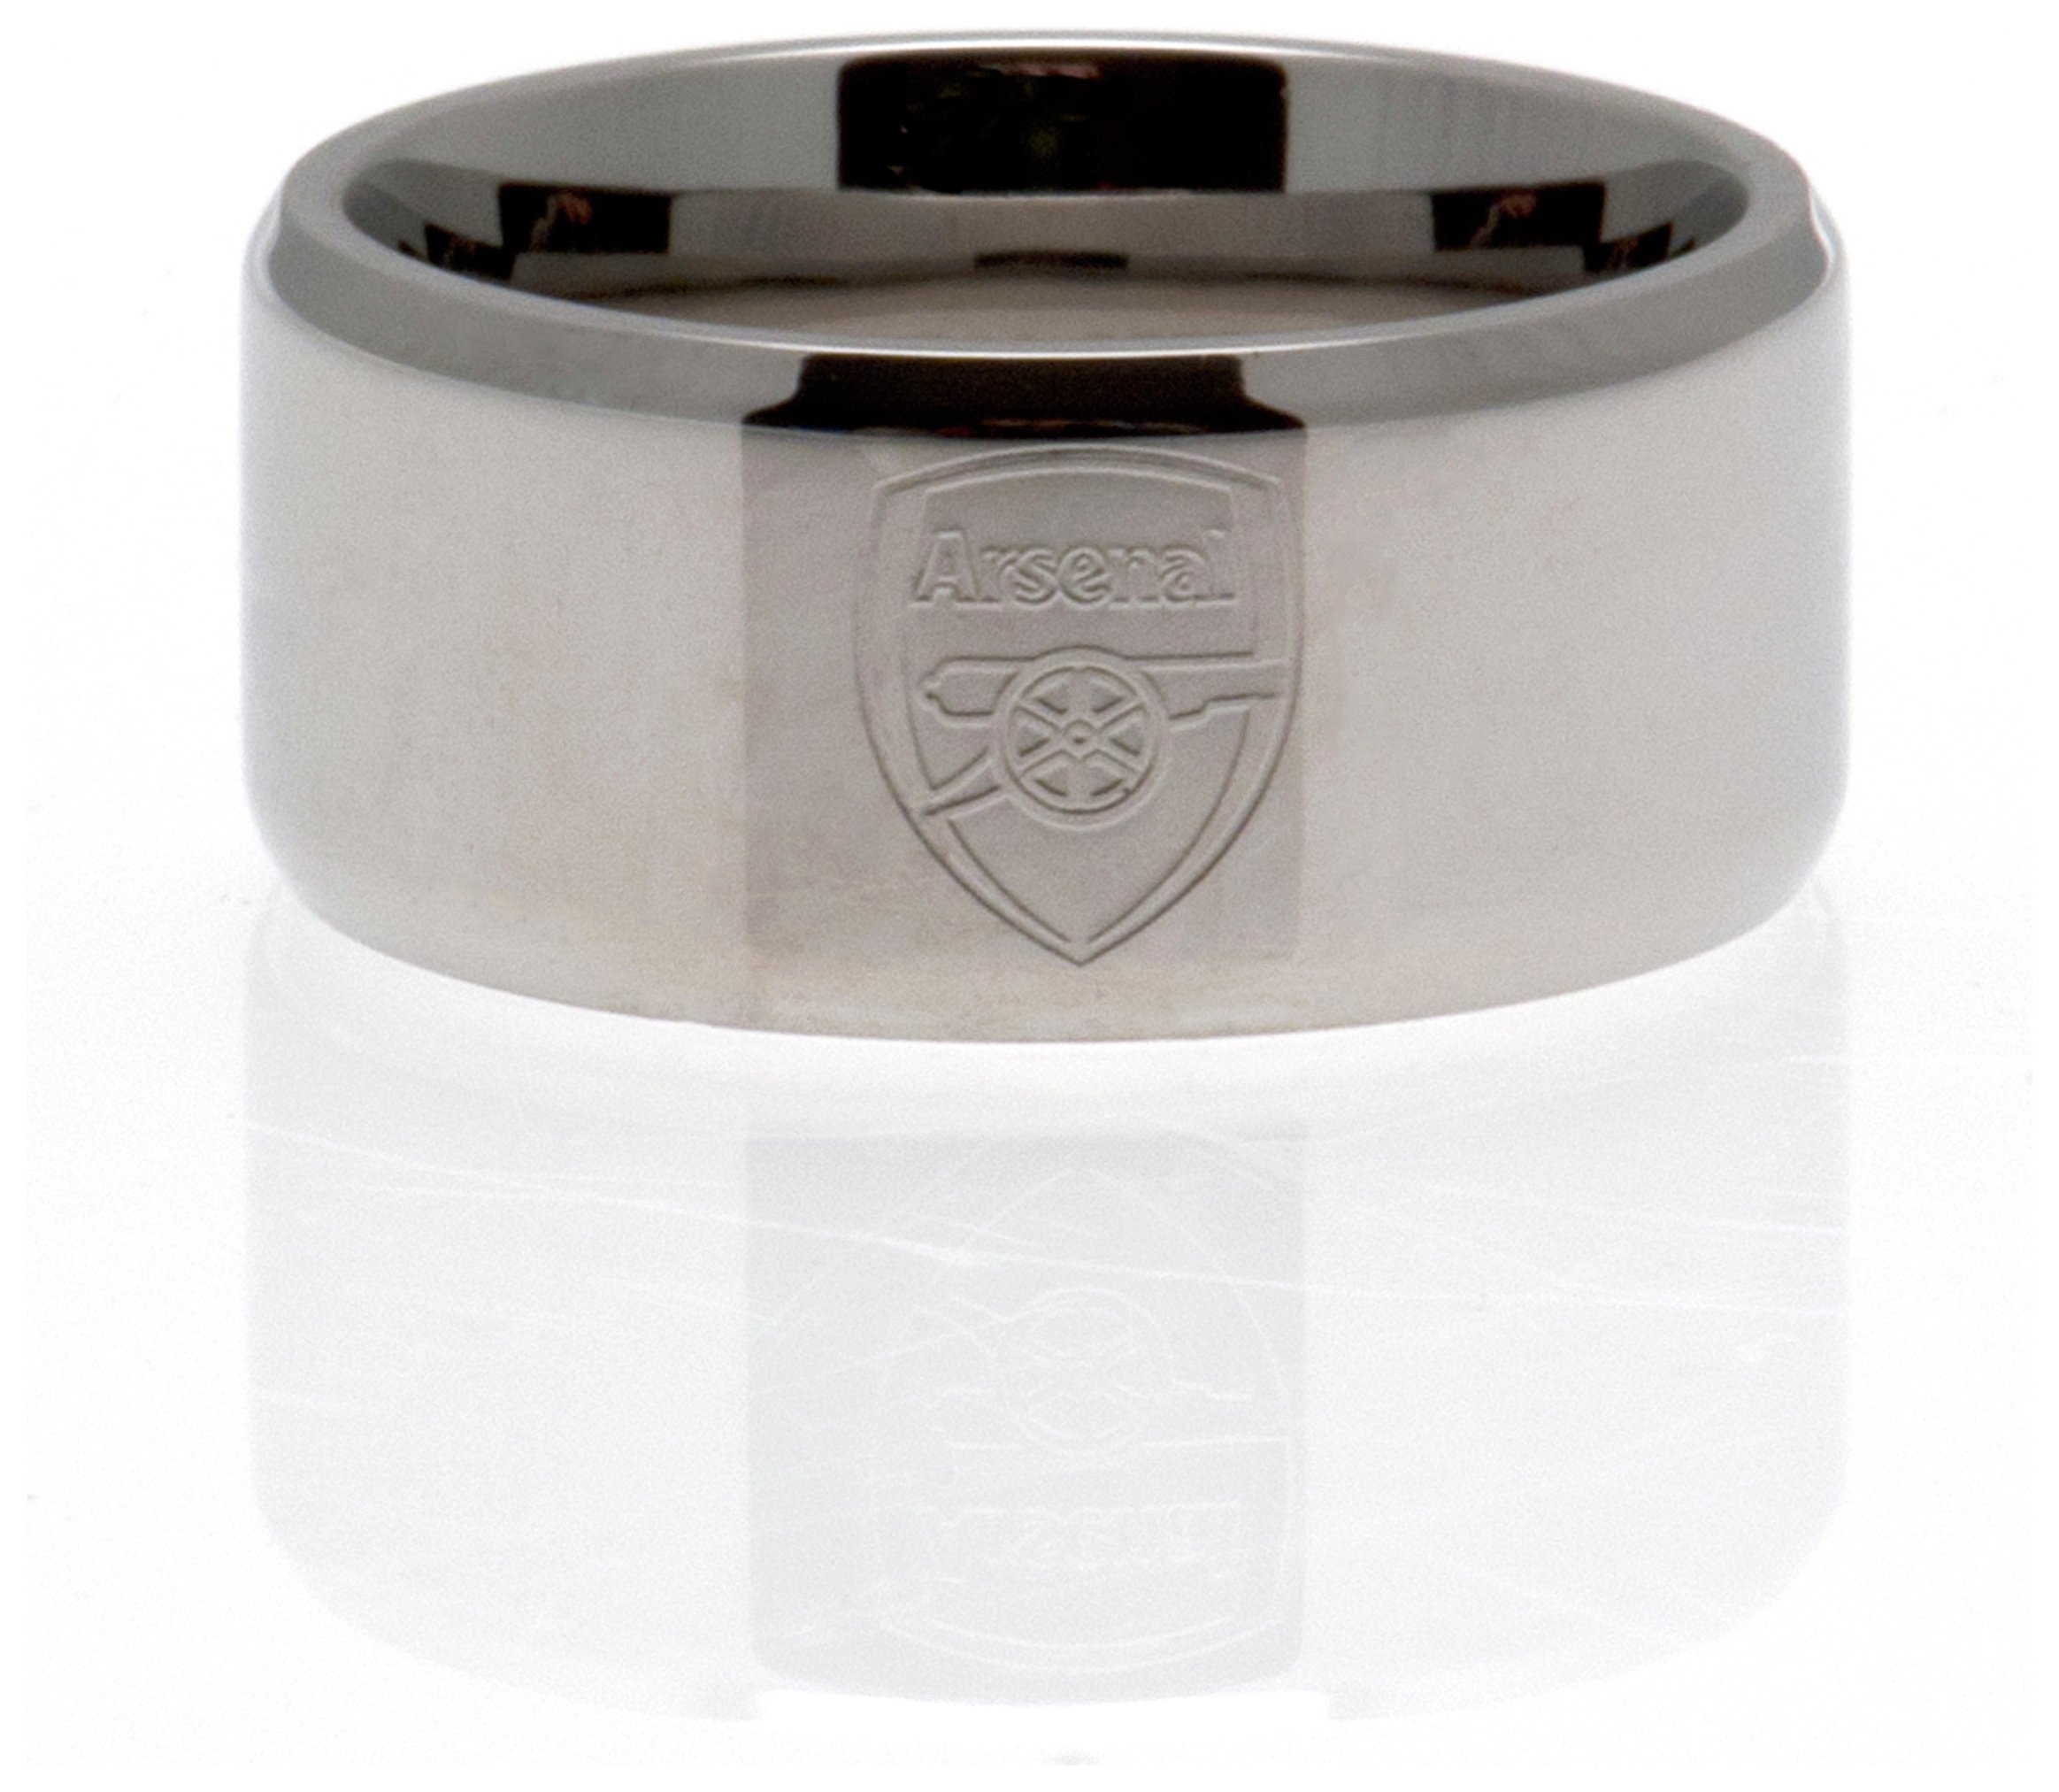 Image of Stainless Steel Arsenal Ring - Size X